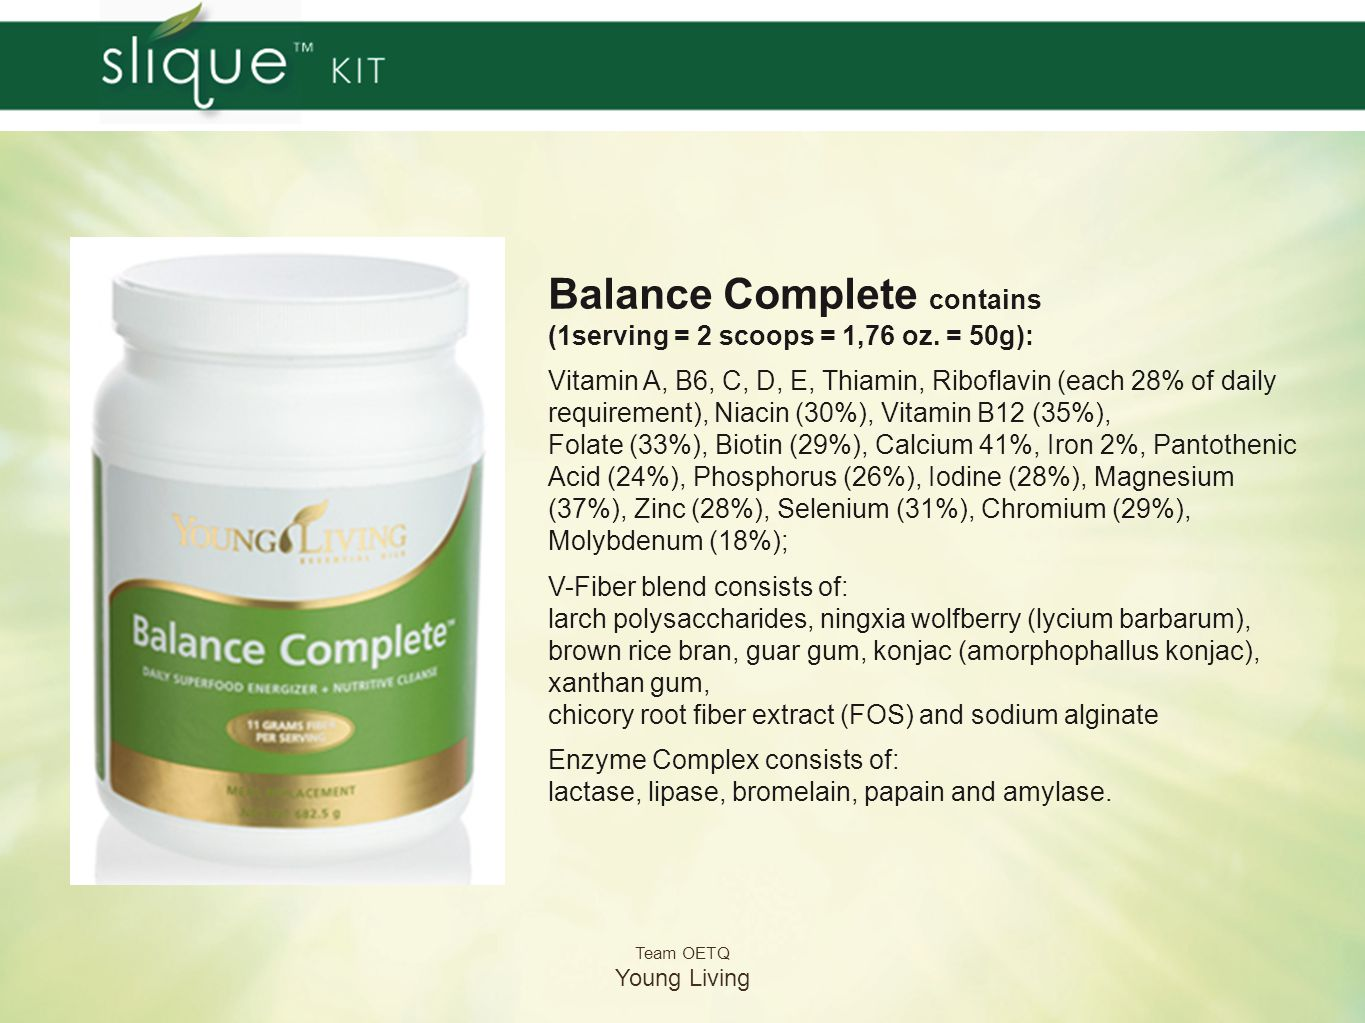 Balance Complete contains (1serving = 2 scoops = 1,76 oz. = 50g):